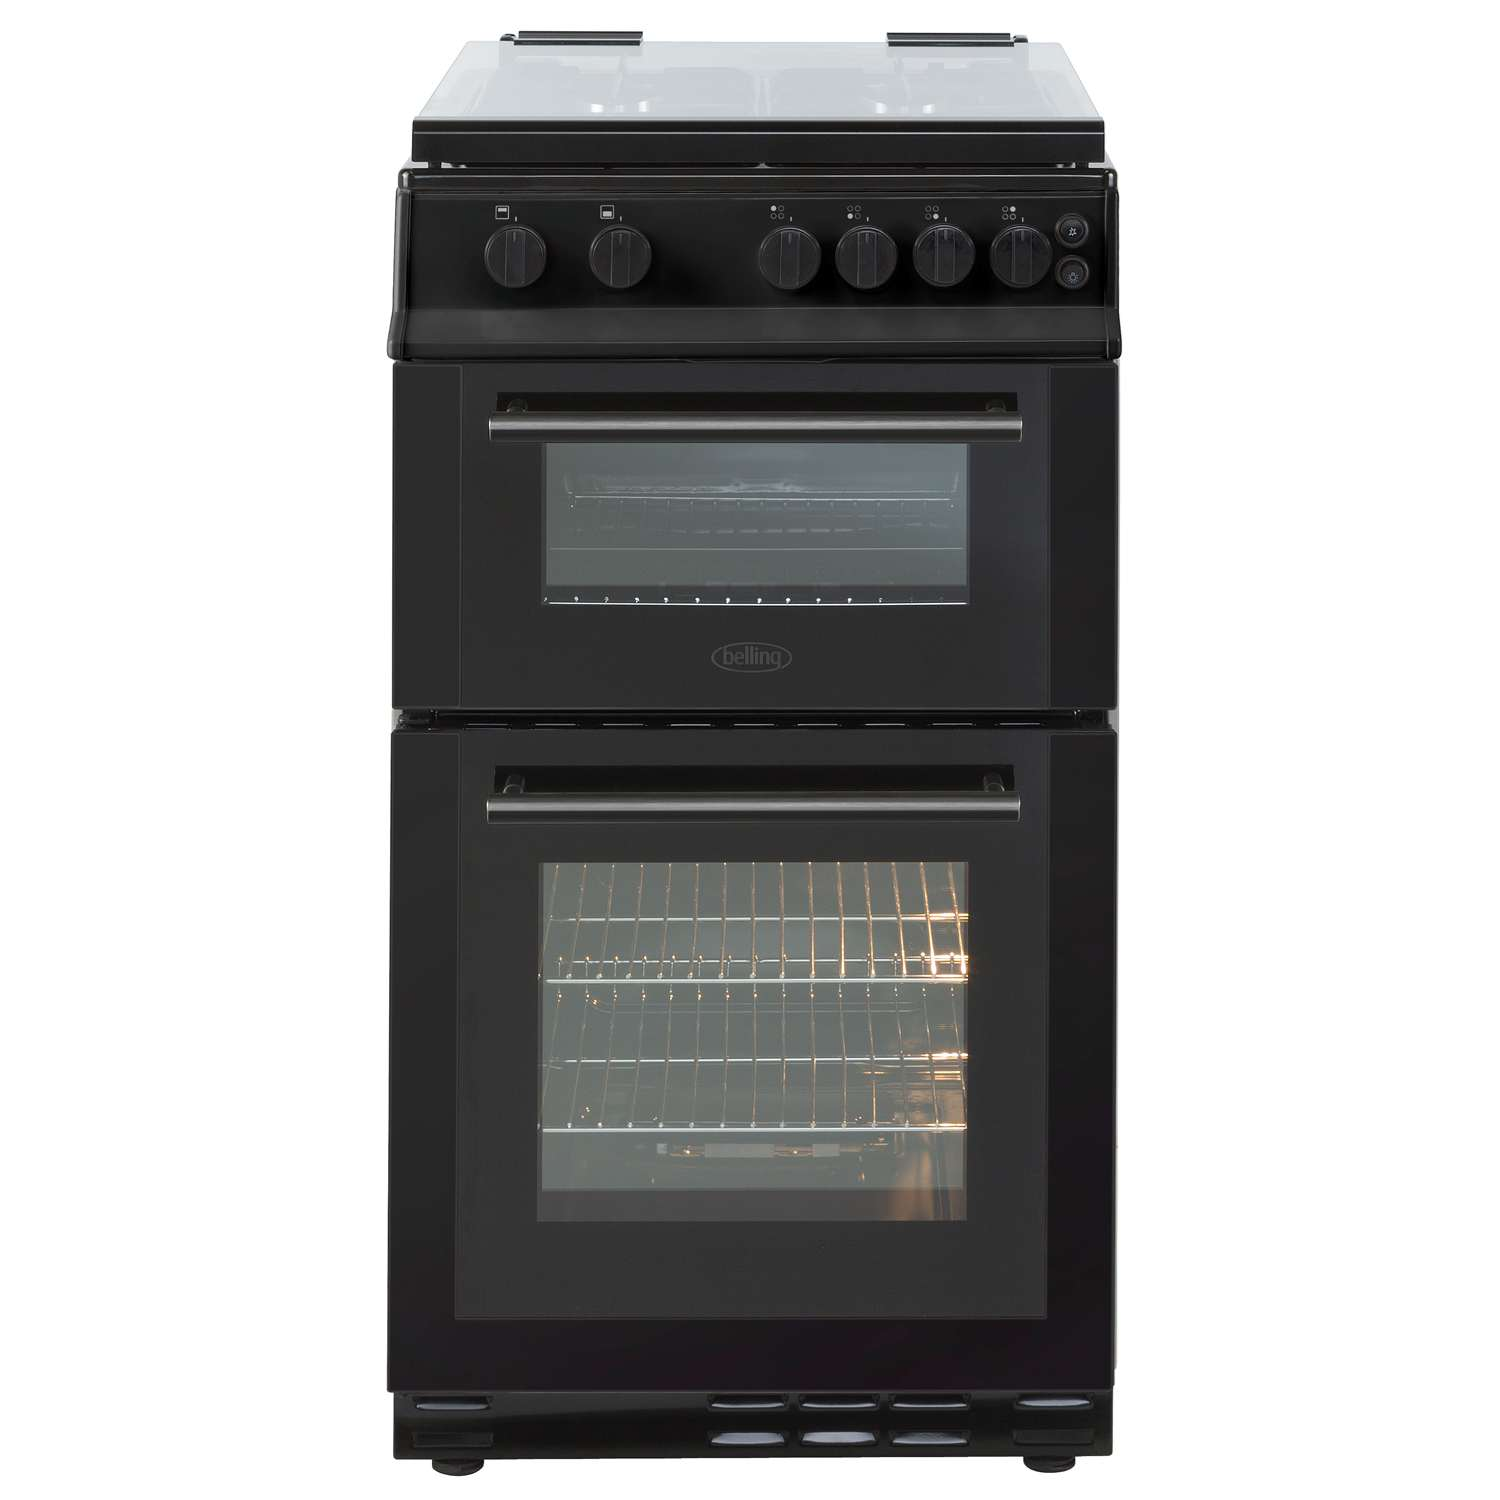 belling fs50gdol 50cm freestanding double oven 4 burners. Black Bedroom Furniture Sets. Home Design Ideas